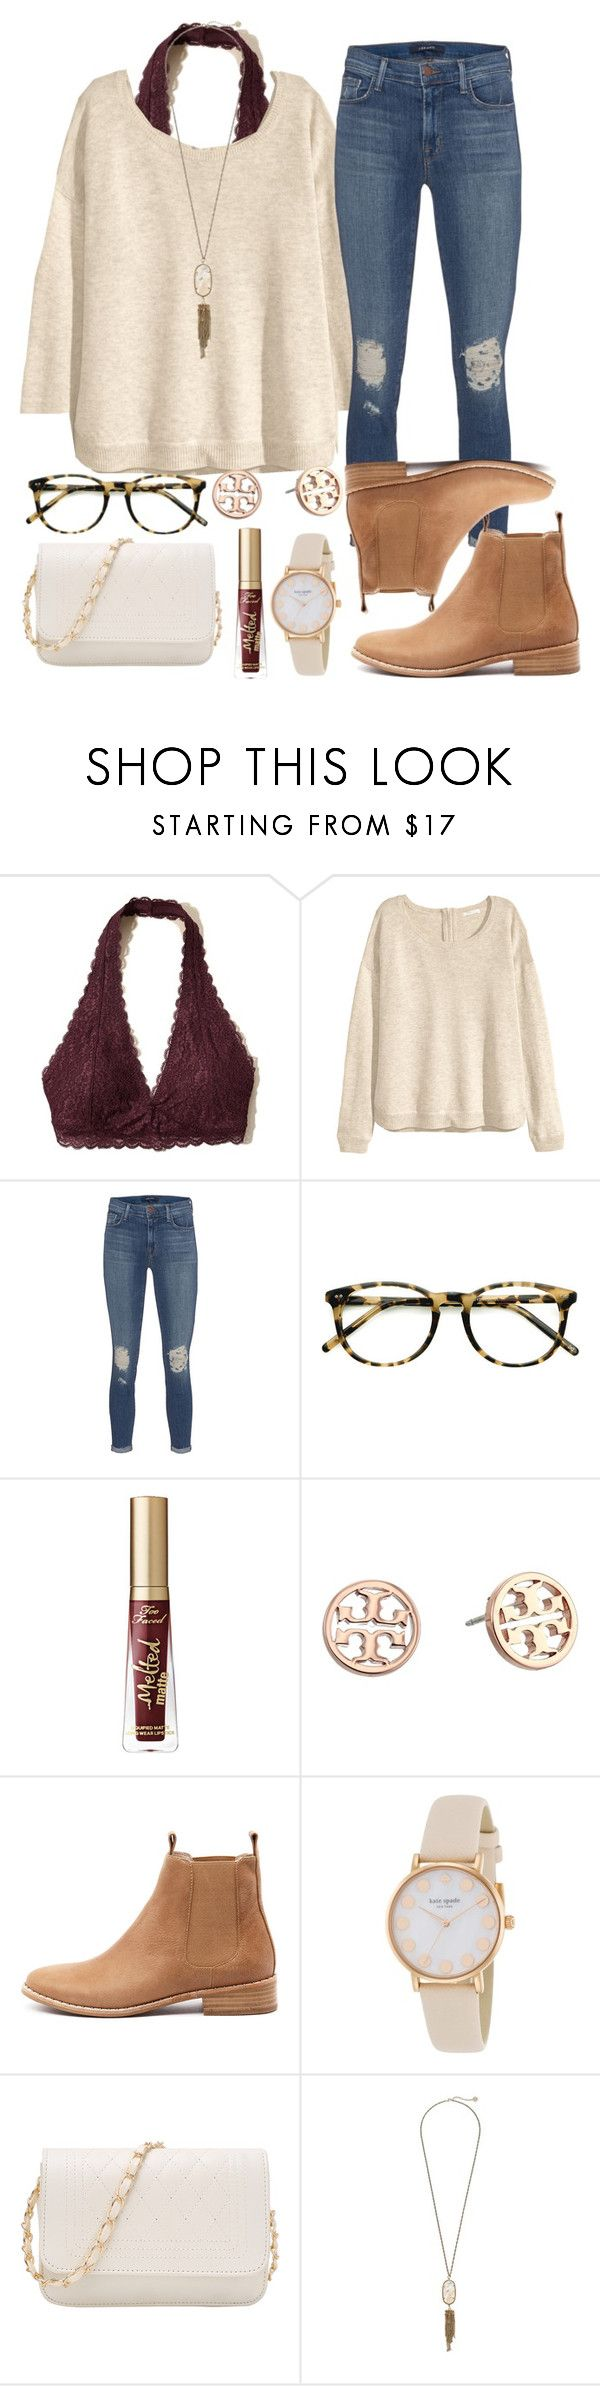 """""""ready for fall """" by hey-faith ❤ liked on Polyvore featuring Hollister Co., H&M, J Brand, Ace, Too Faced Cosmetics, Tory Burch, Mollini, Kate Spade and Kendra Scott"""